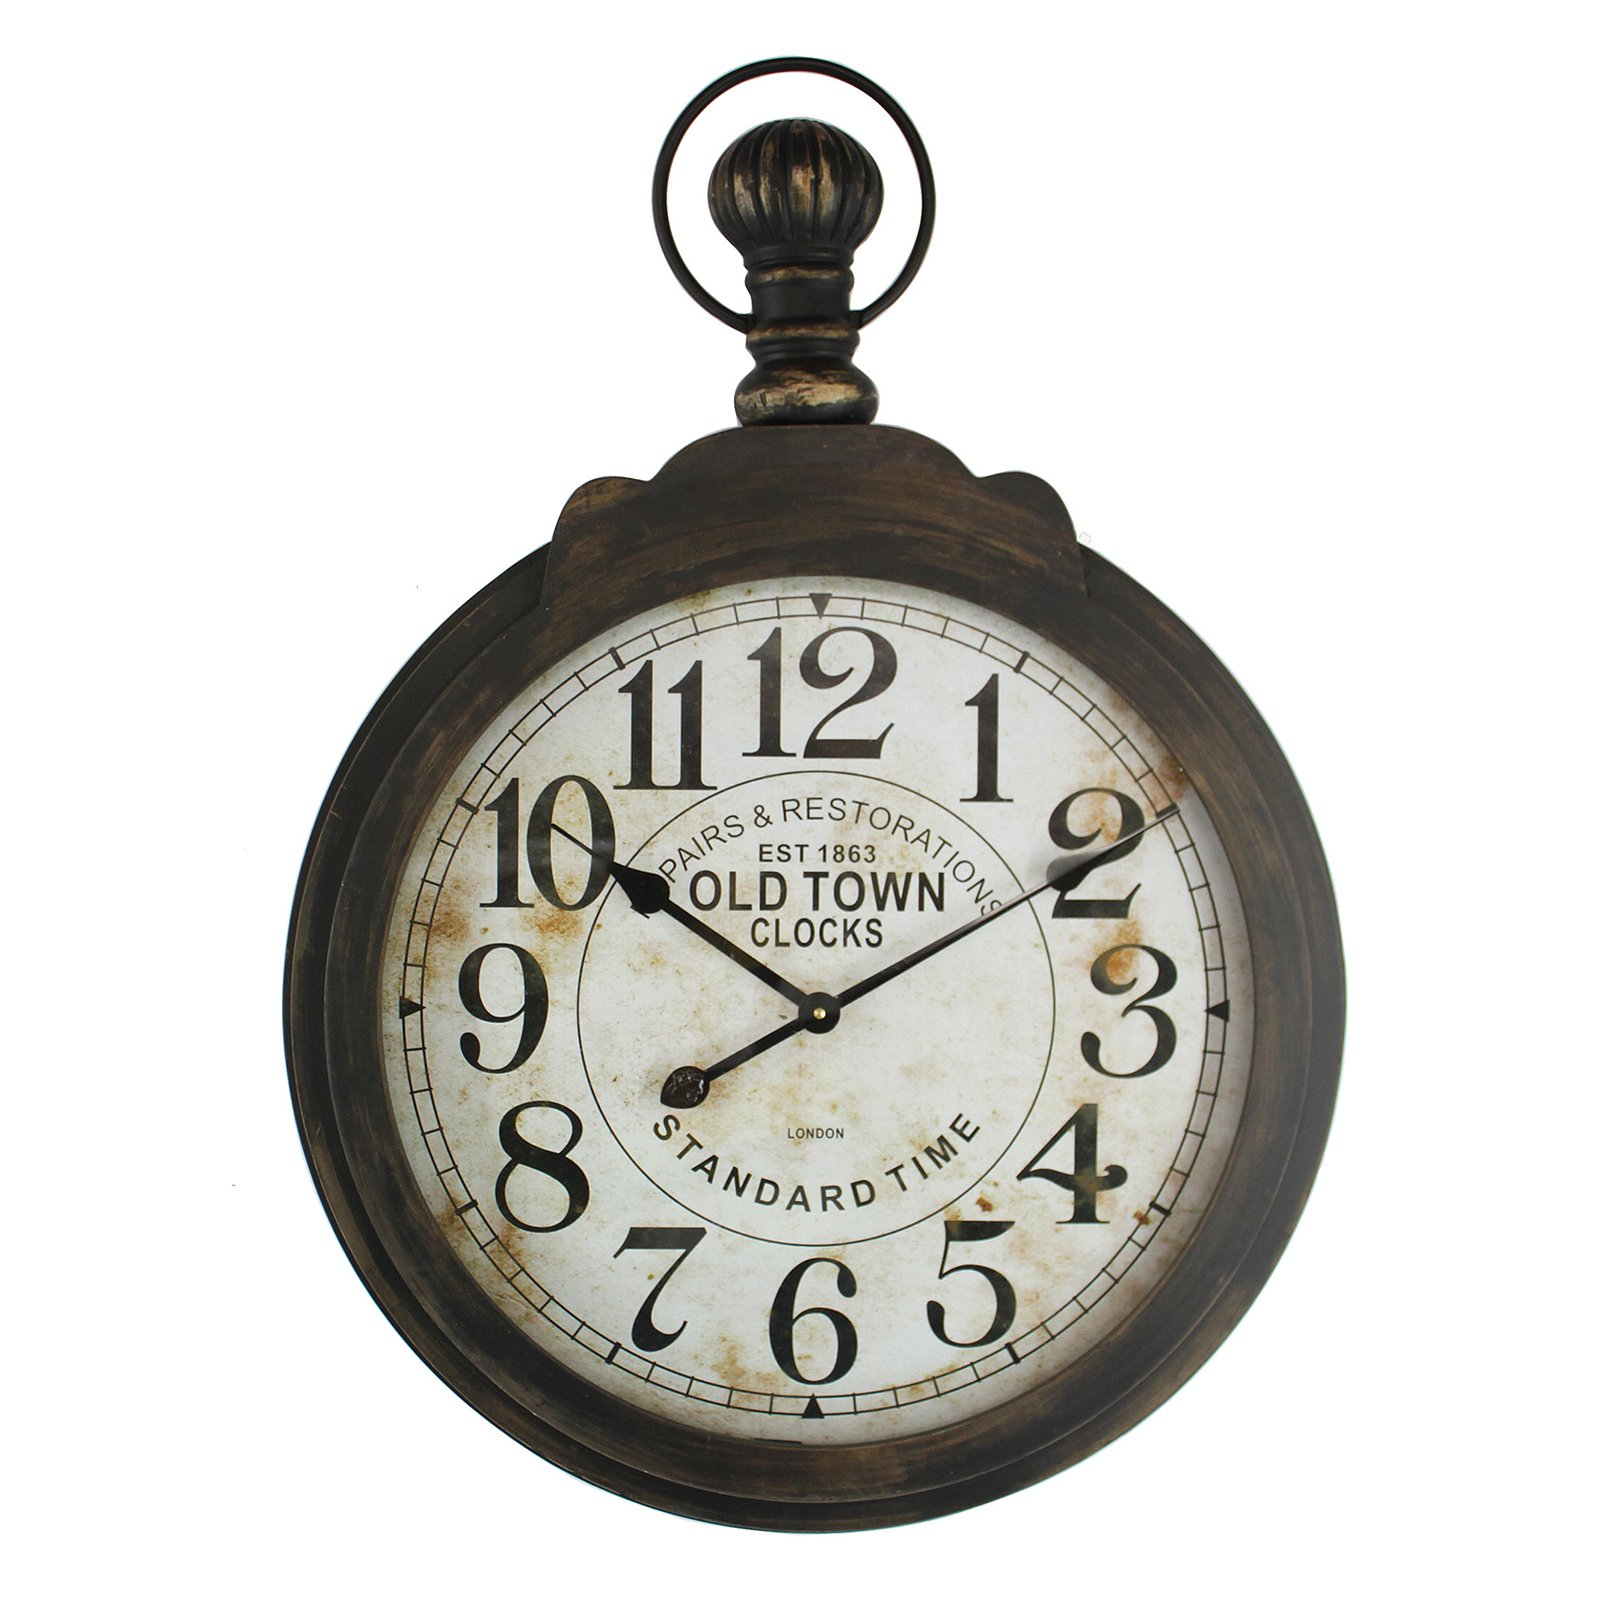 Yosemite Home Decor Iron Ring and Glass Lens Wall Clock - 23.5W x 33H in.